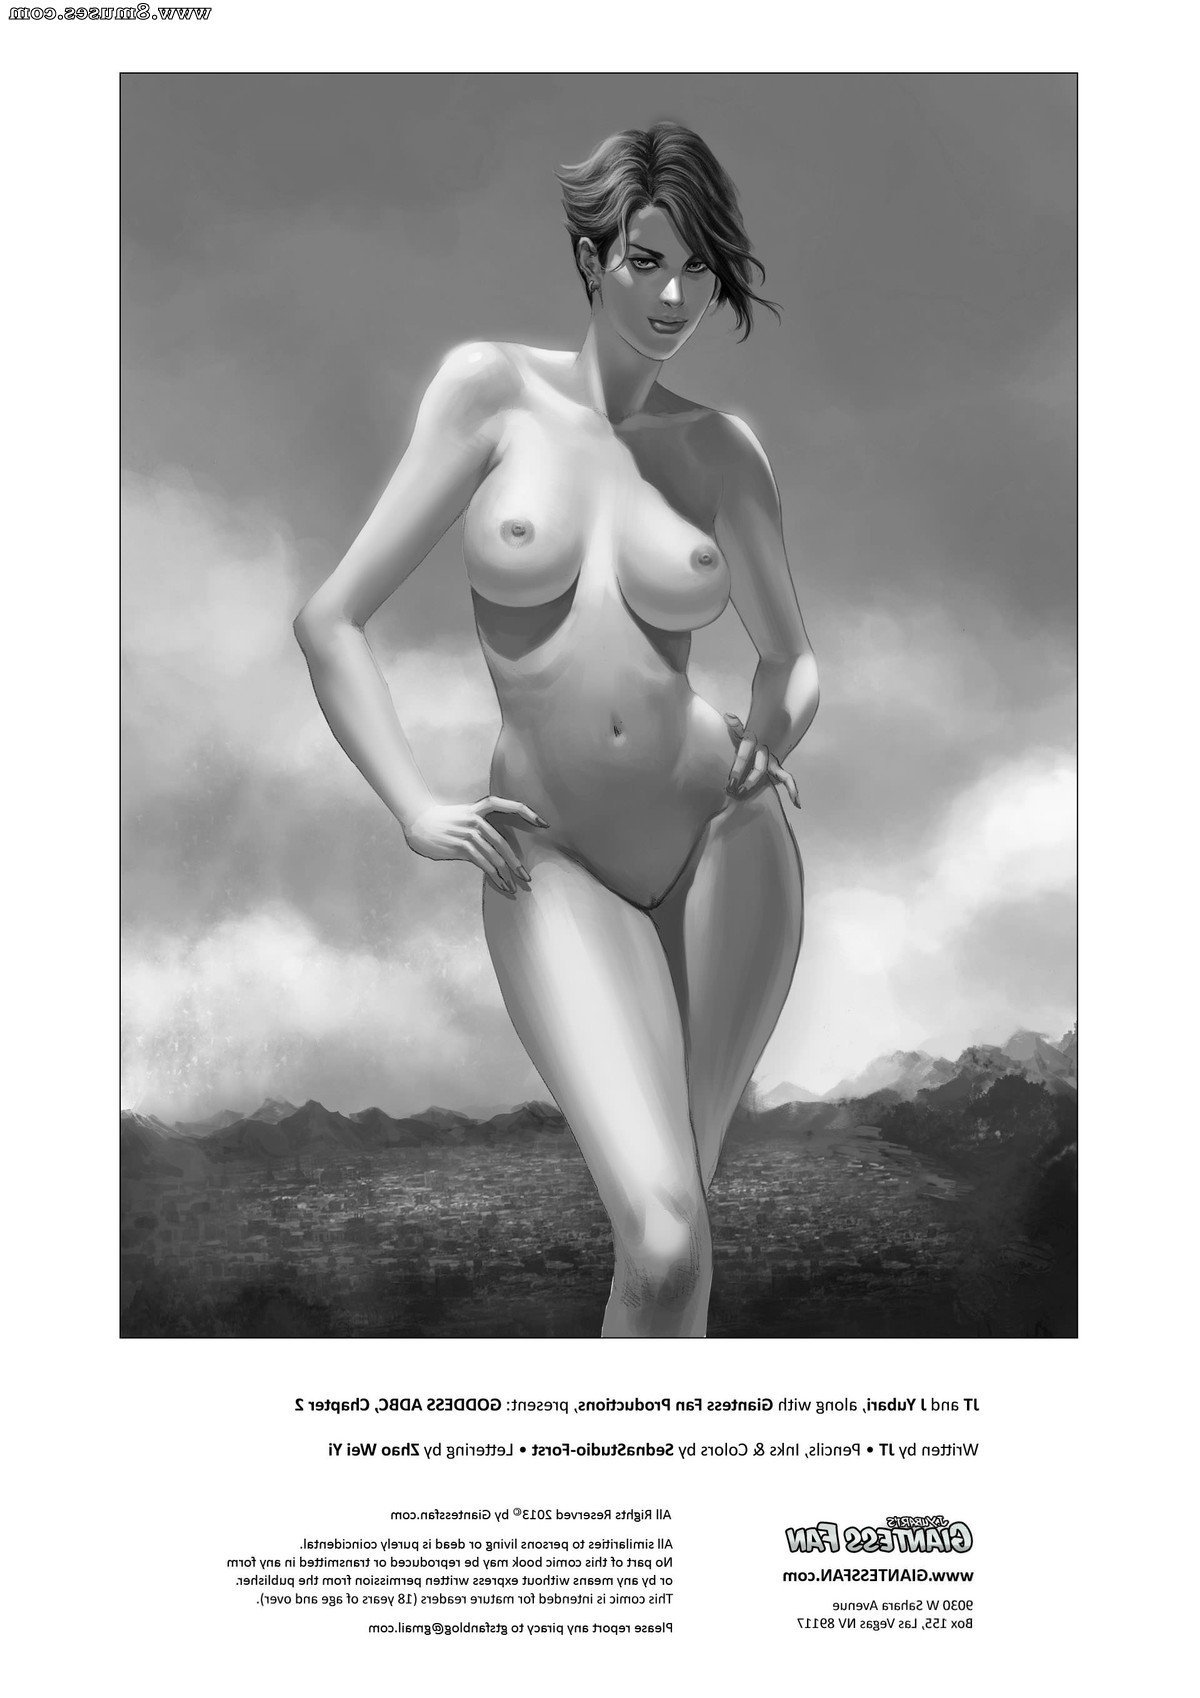 Giantess-Fan-Comics/Goddess-ADBC/Issue-2 Goddess_ADBC_-_Issue_2_2.jpg